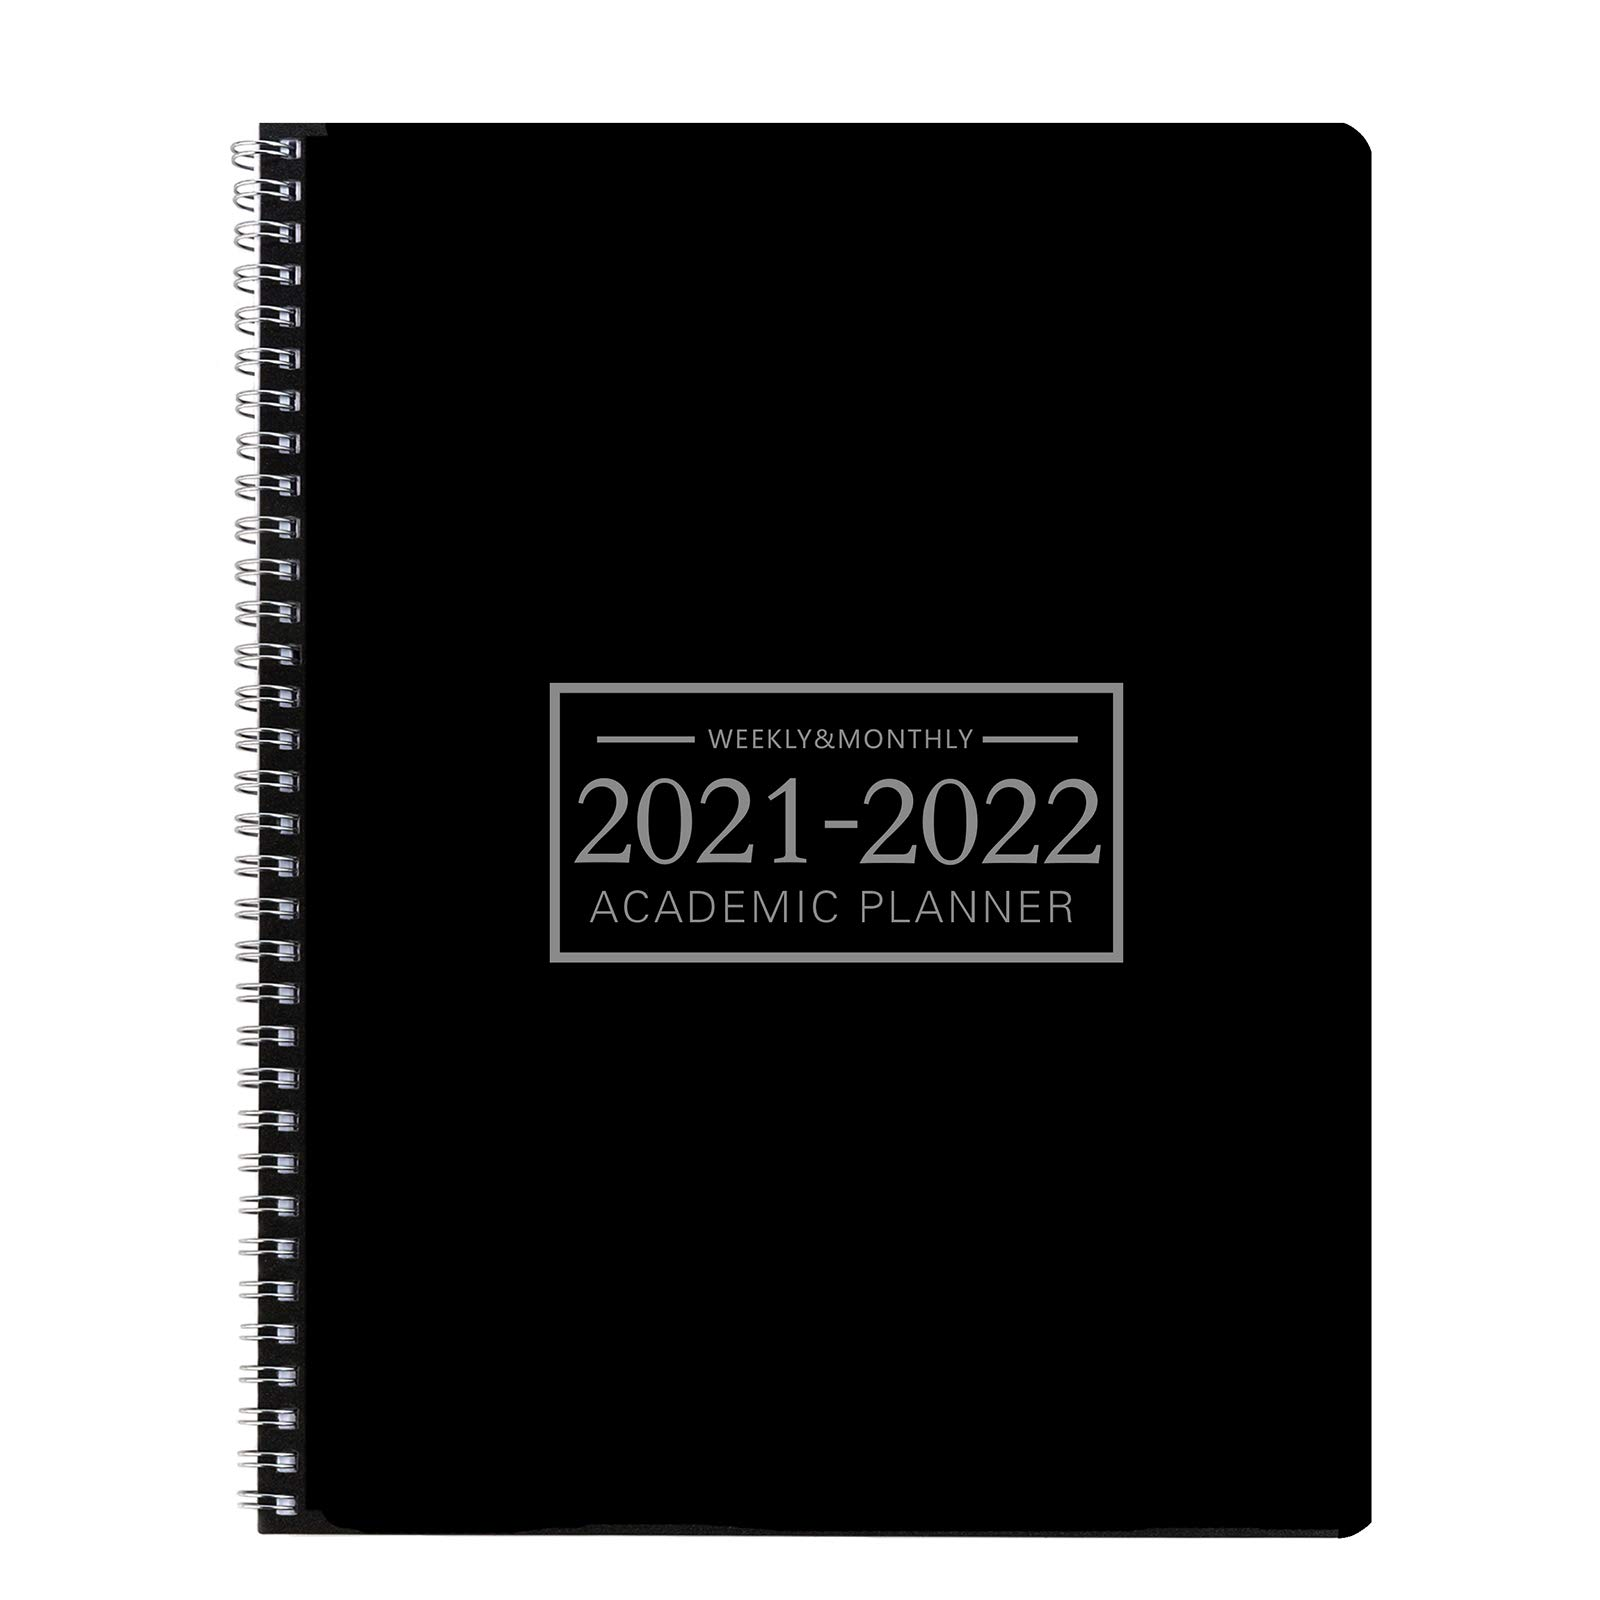 Office Planner Jan 2021- Dec 2022 Monthly Calendar Planner -8.7×11.2 Time Management Personal Planner Hard PVC Cover with Spiral Bound